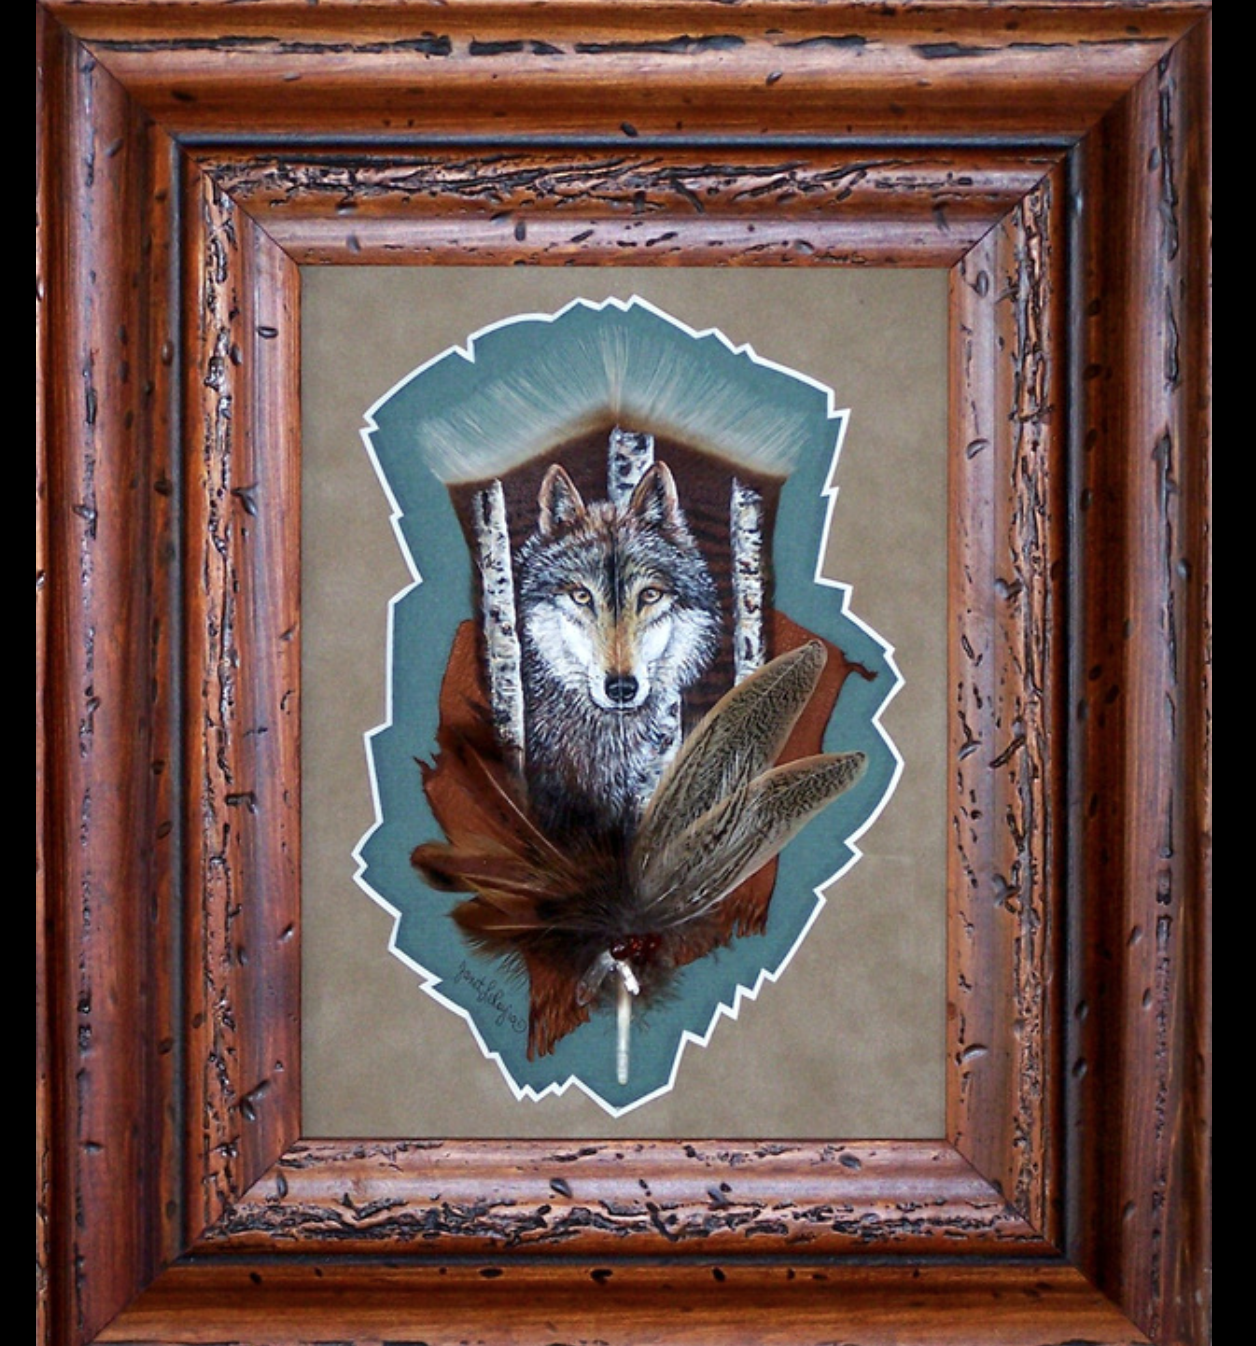 Janet LeRoy - http://www.janetleroy.comI use Acrylic to hand paint turkey feathers in Wildlife, Western and Native American designs. I then accent my pieces with smaller feathers. My matting is all hand carved and I custom frame each piece